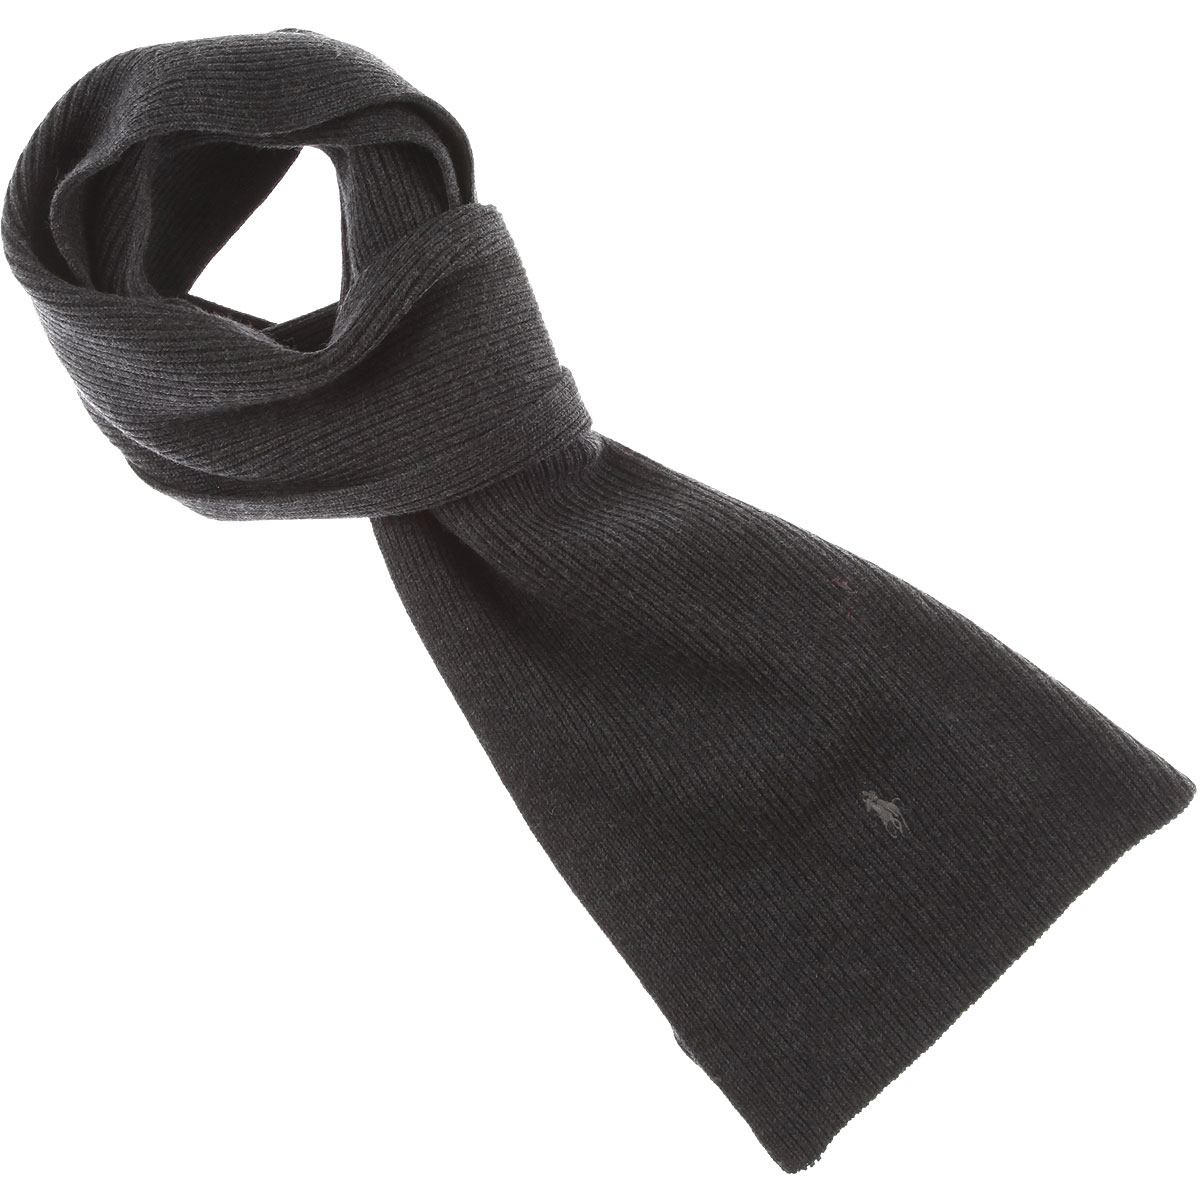 Ralph Lauren Scarf for Men Dark Grey Canada - GOOFASH - Mens SCARFS